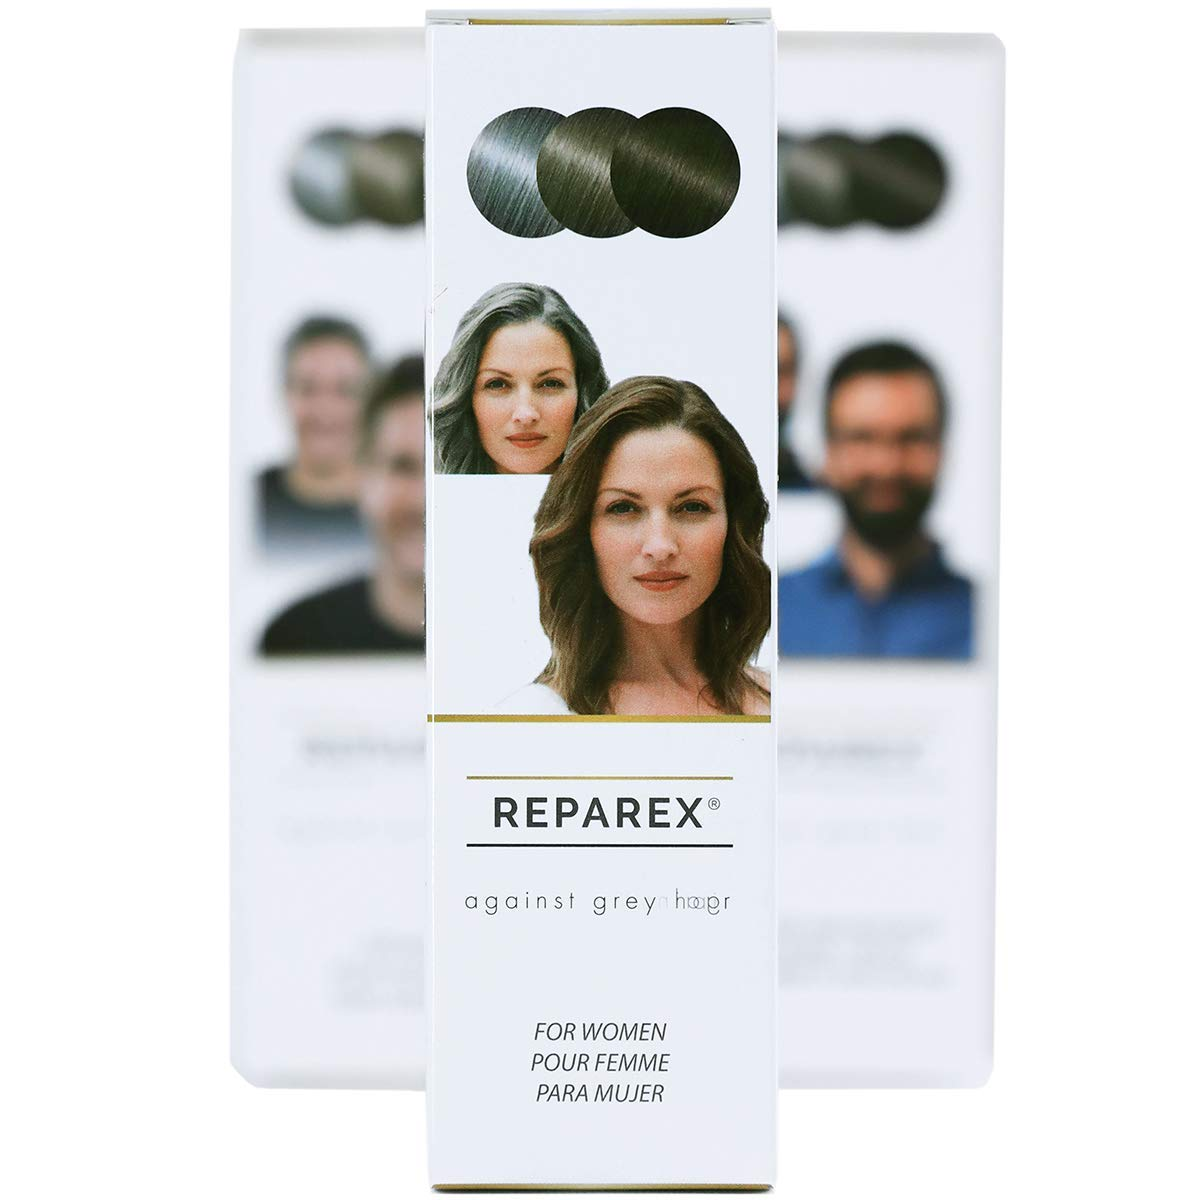 NEW IMPROVED Reparex For Women - No More Gray in the Mirror - Safe and Easy to Use Gray Hair Treatment - Gray Hair Solution - Not a Gray Hair Dye